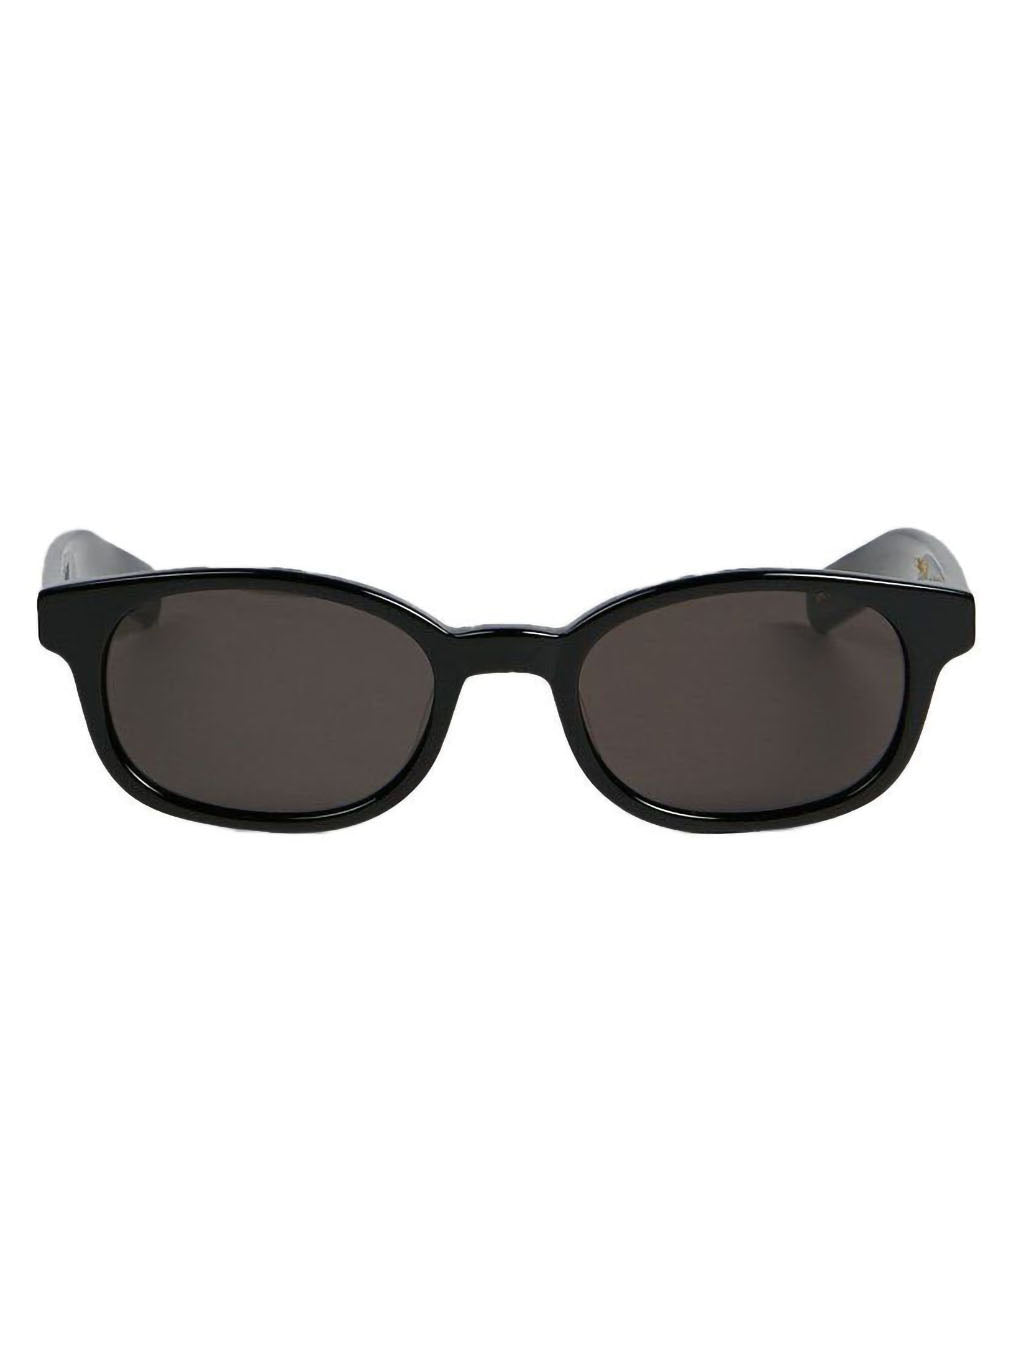 Black Le Bucheron Sunglasses